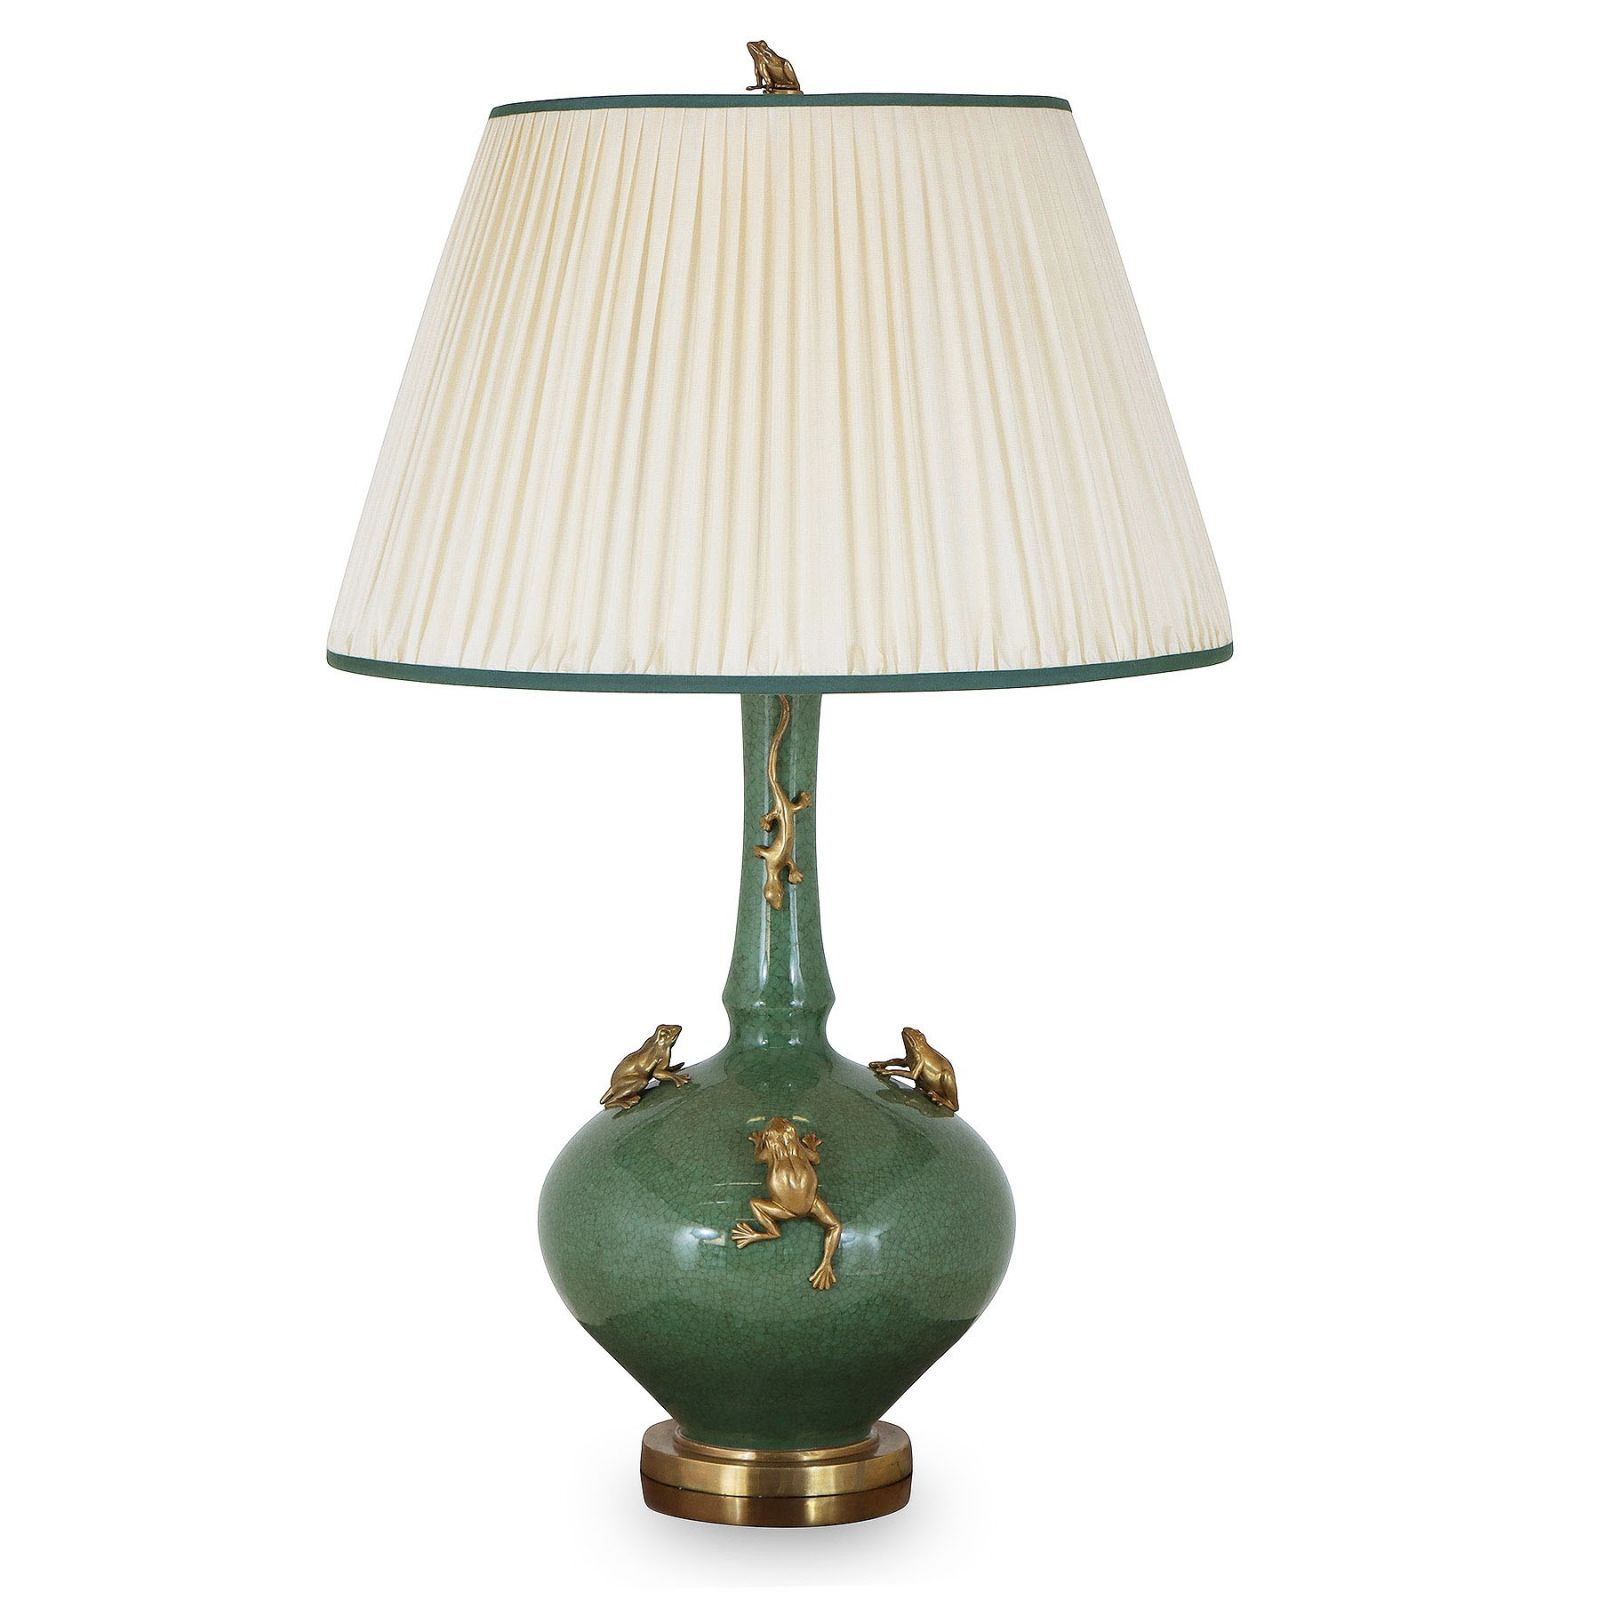 Green porcelain table lamp with brass frogs